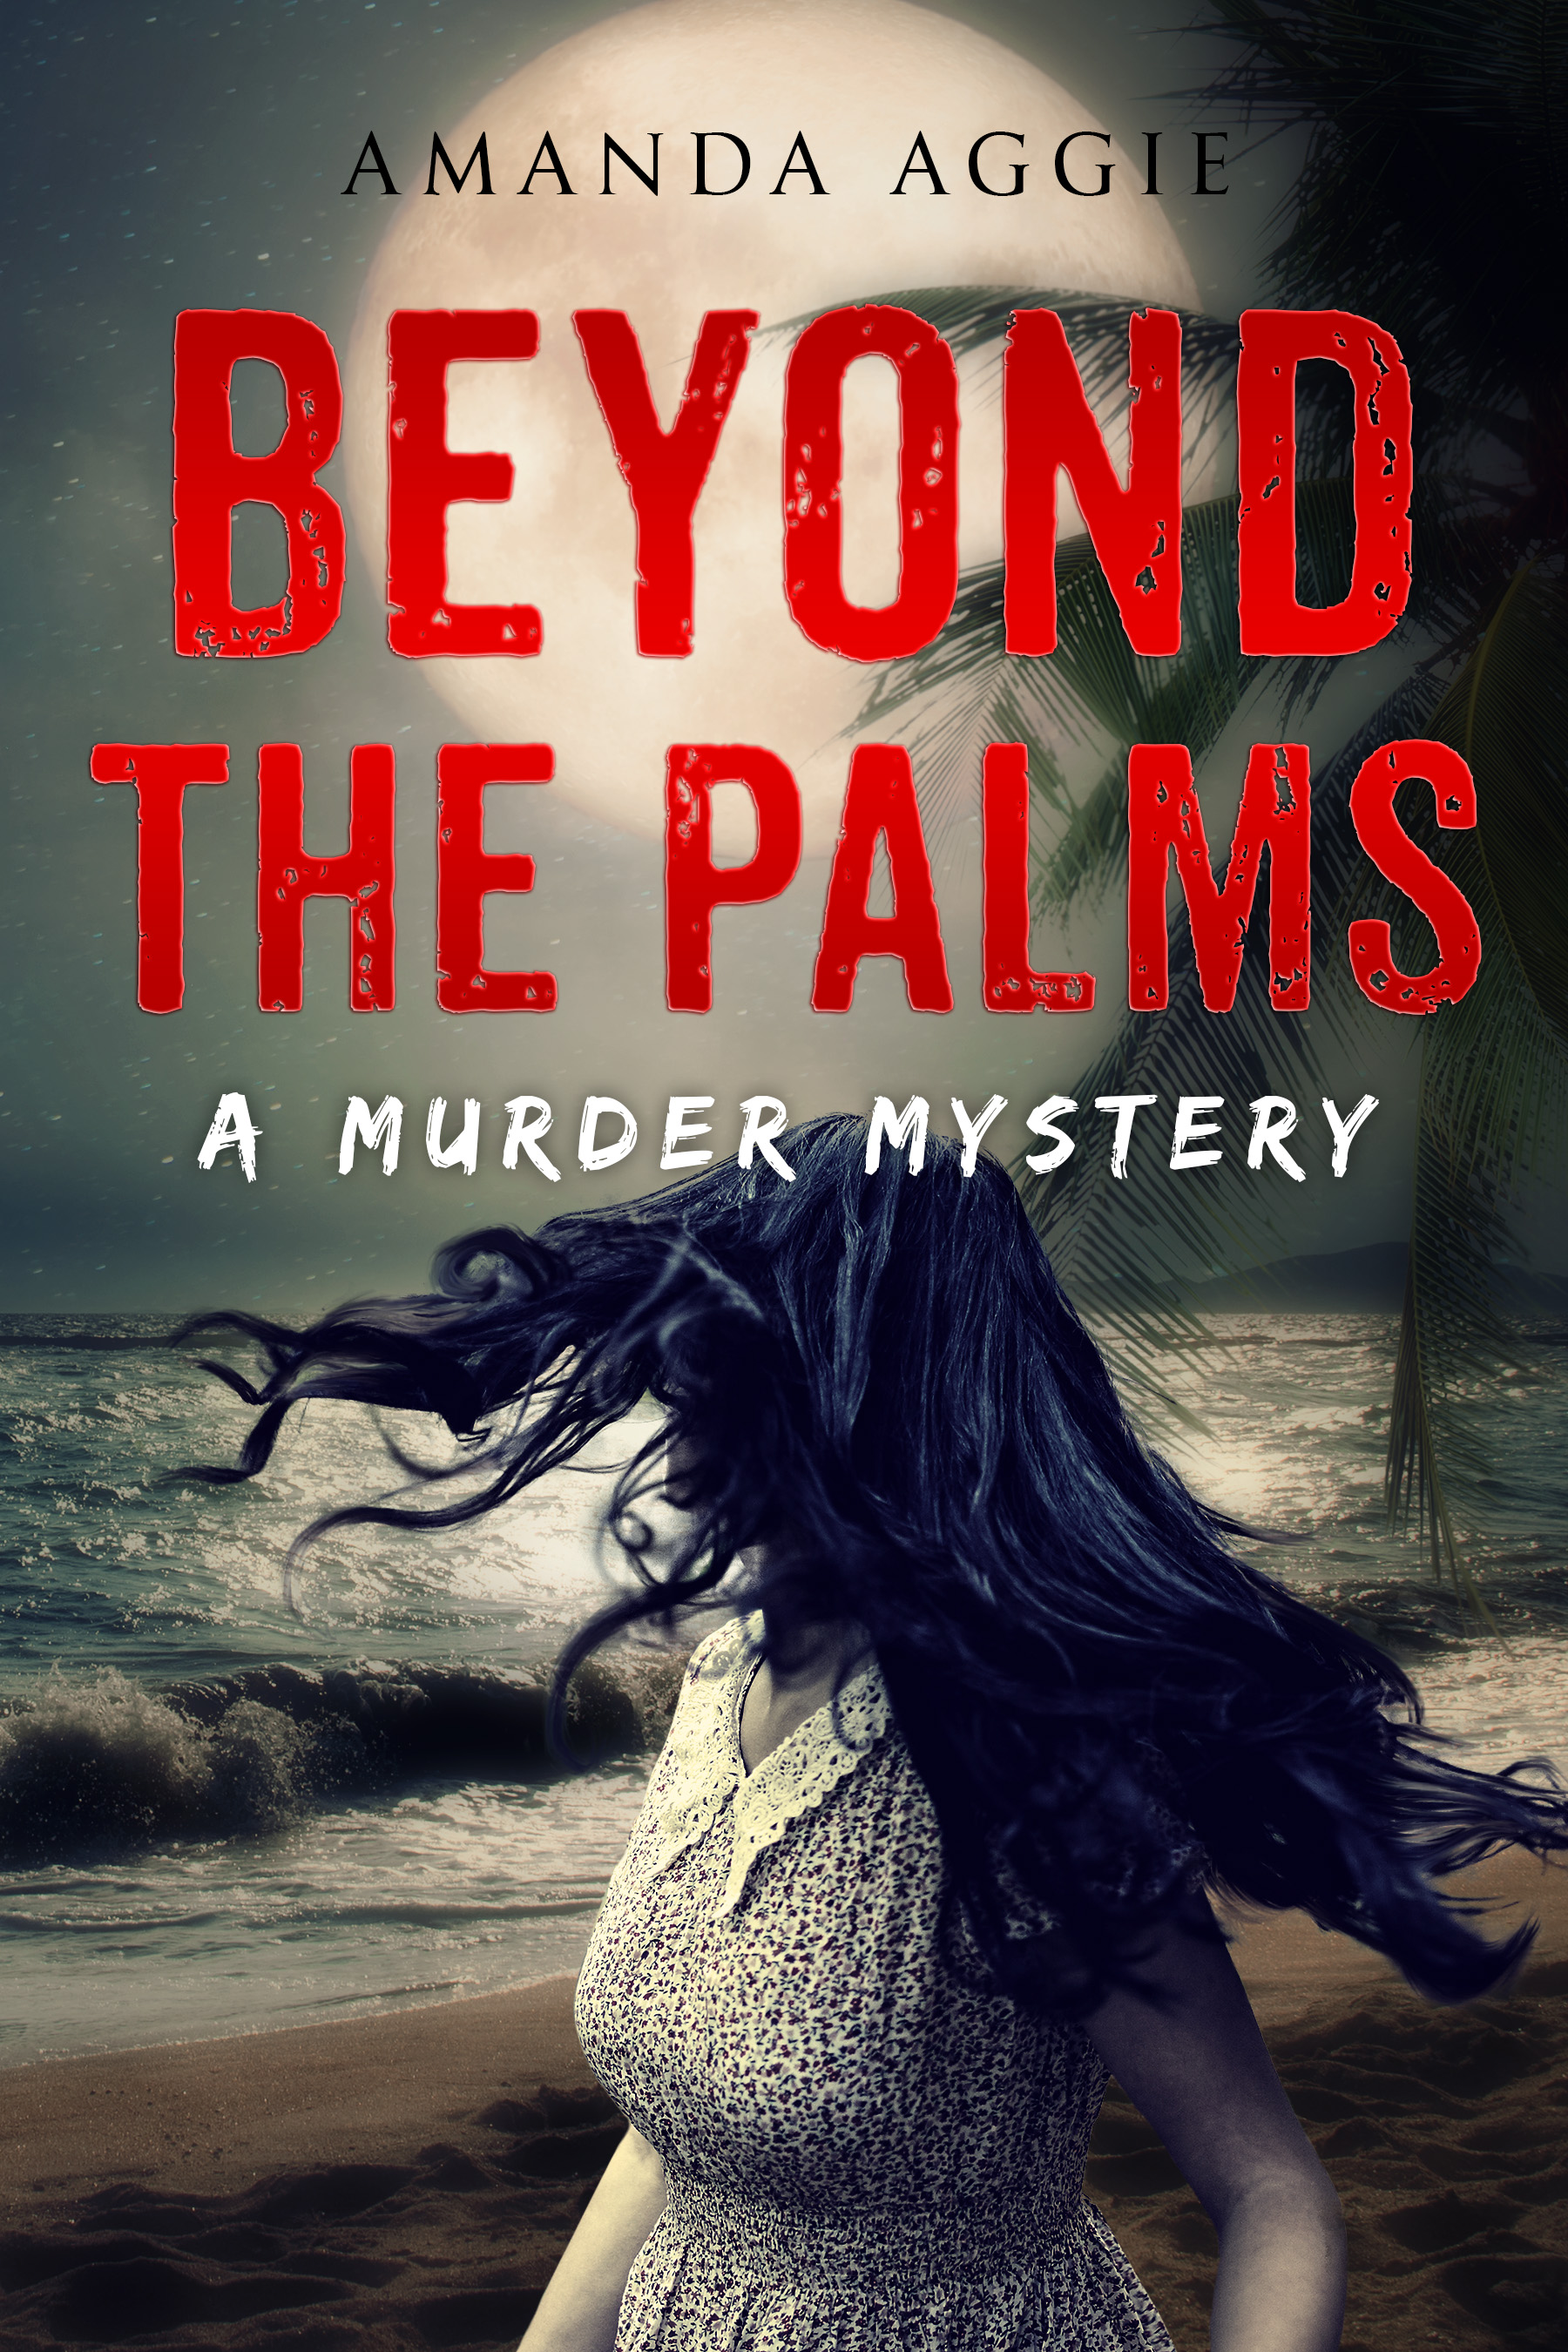 'Beyond the Palms' By Amanda Aggie Takes Mystery Thrillers to a New Level